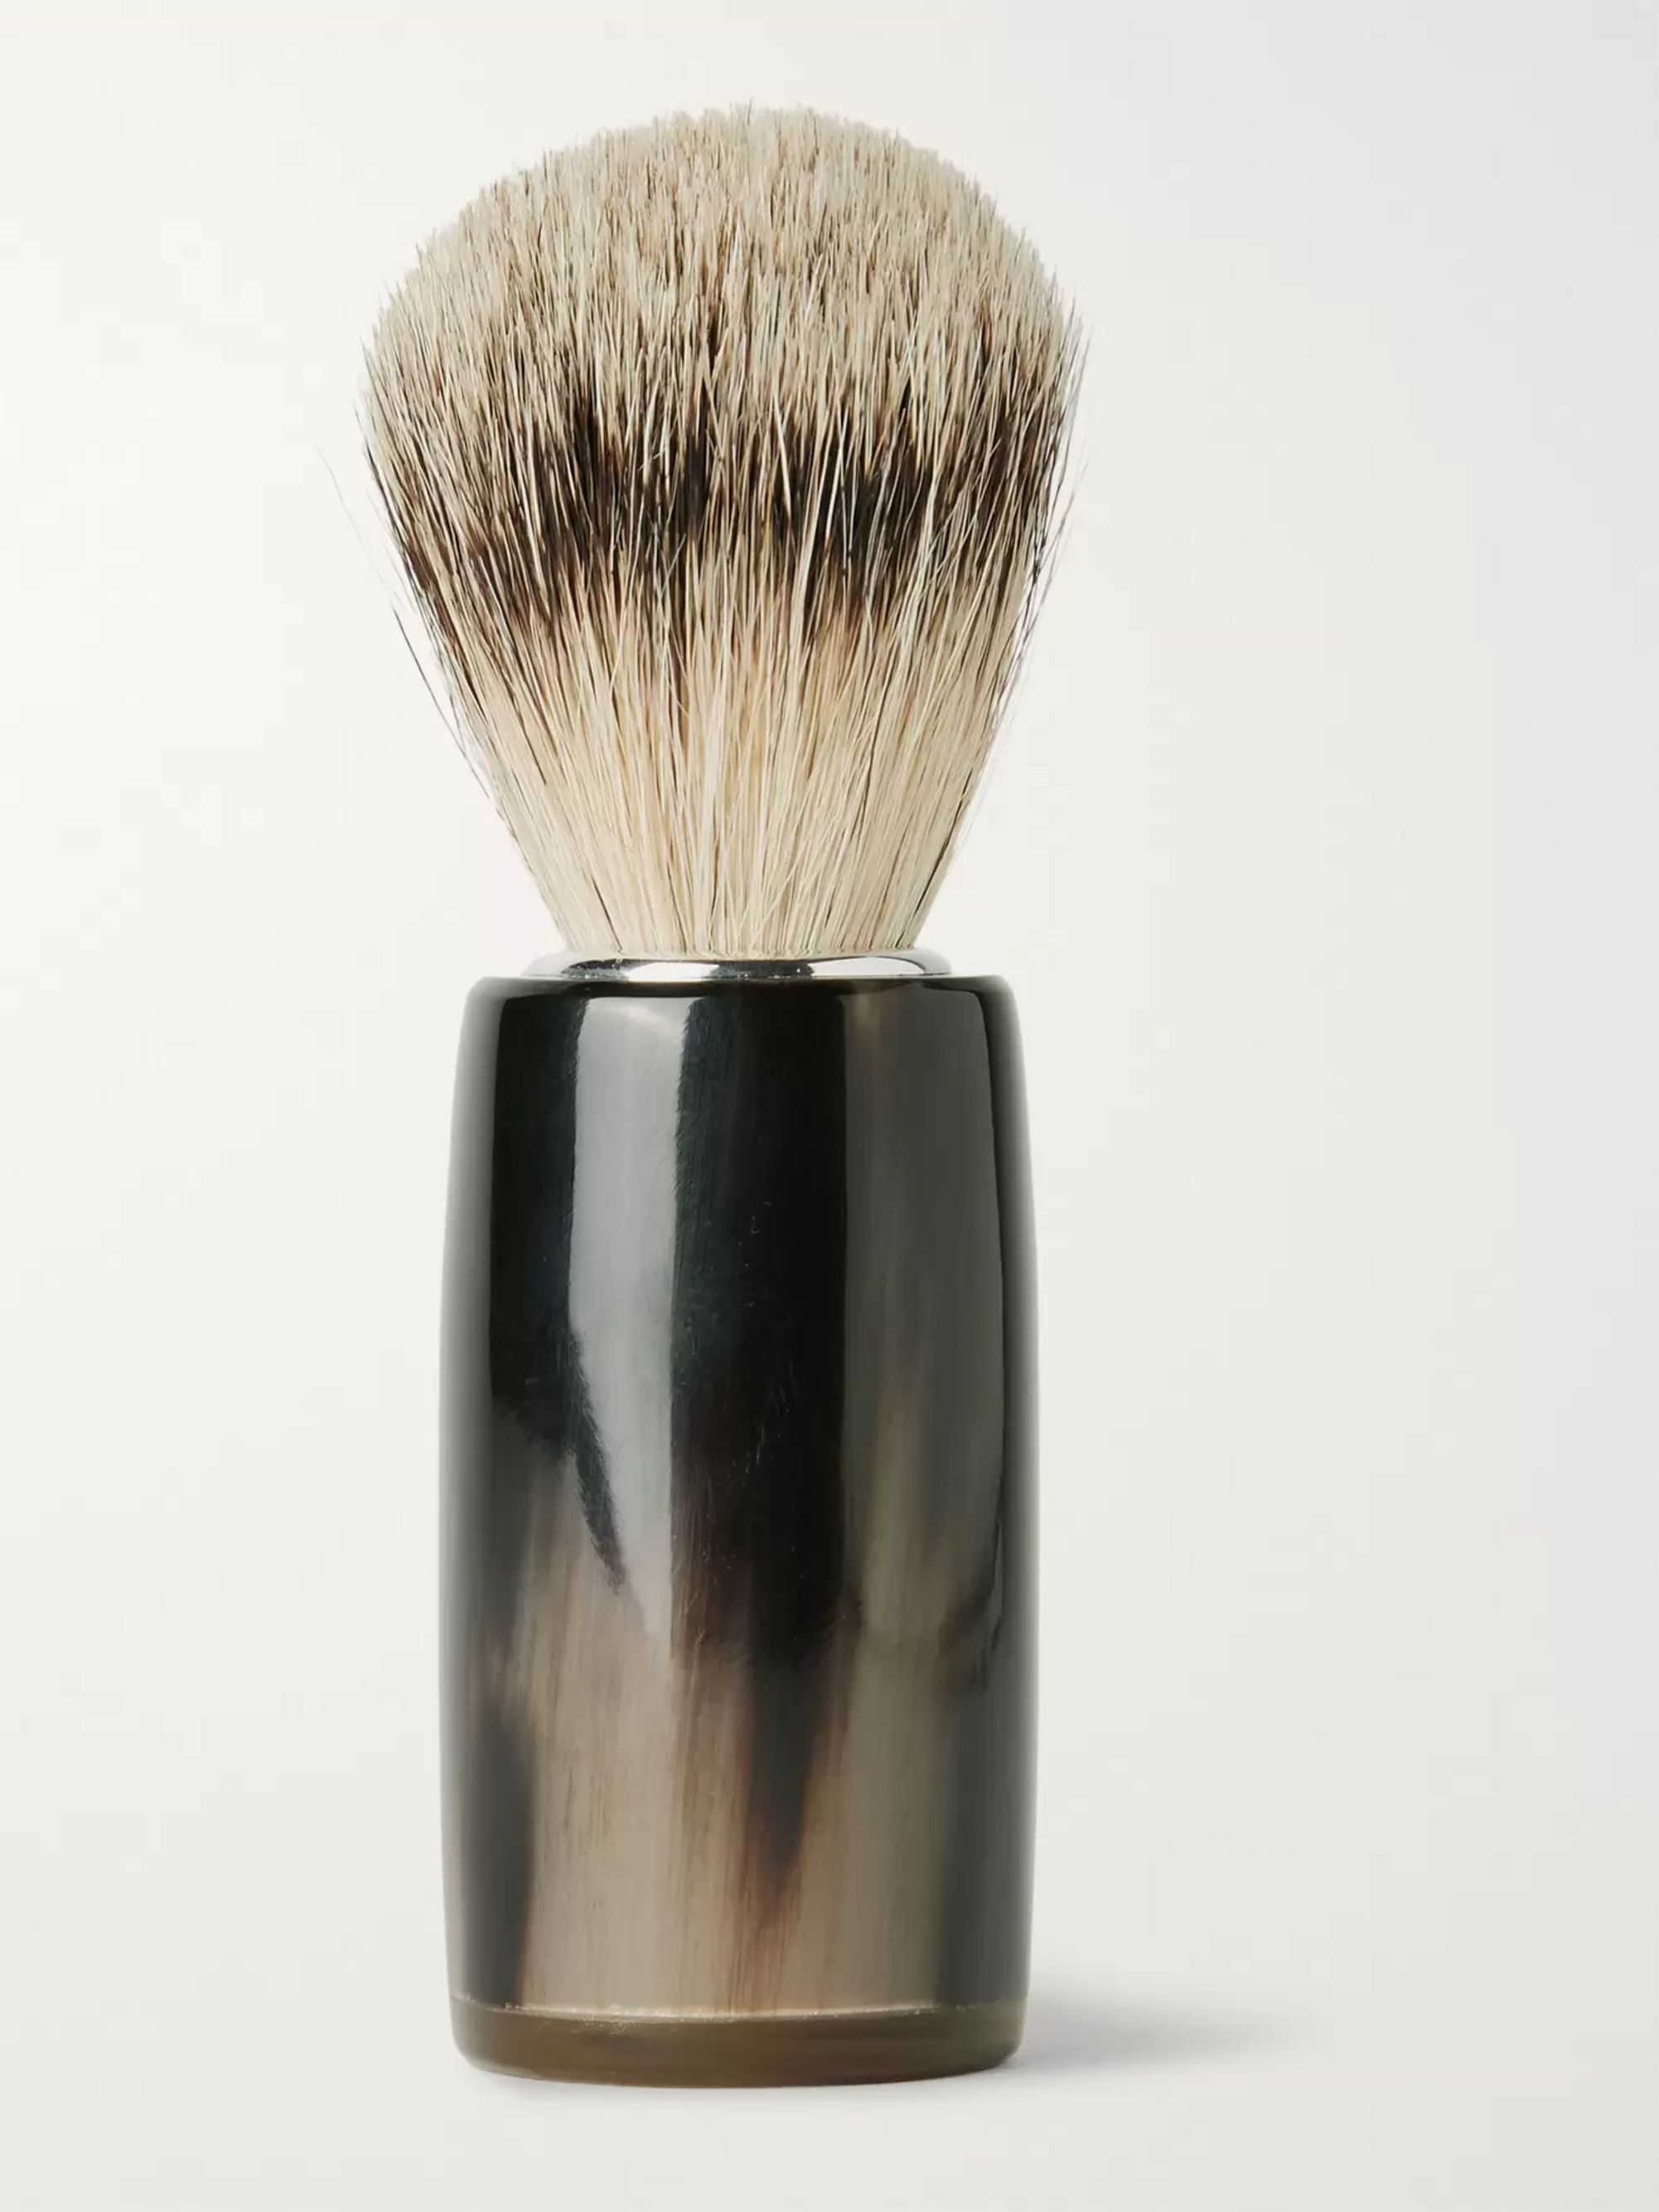 Horn And Super Badger Bristle Shaving Brush by Abbeyhorn